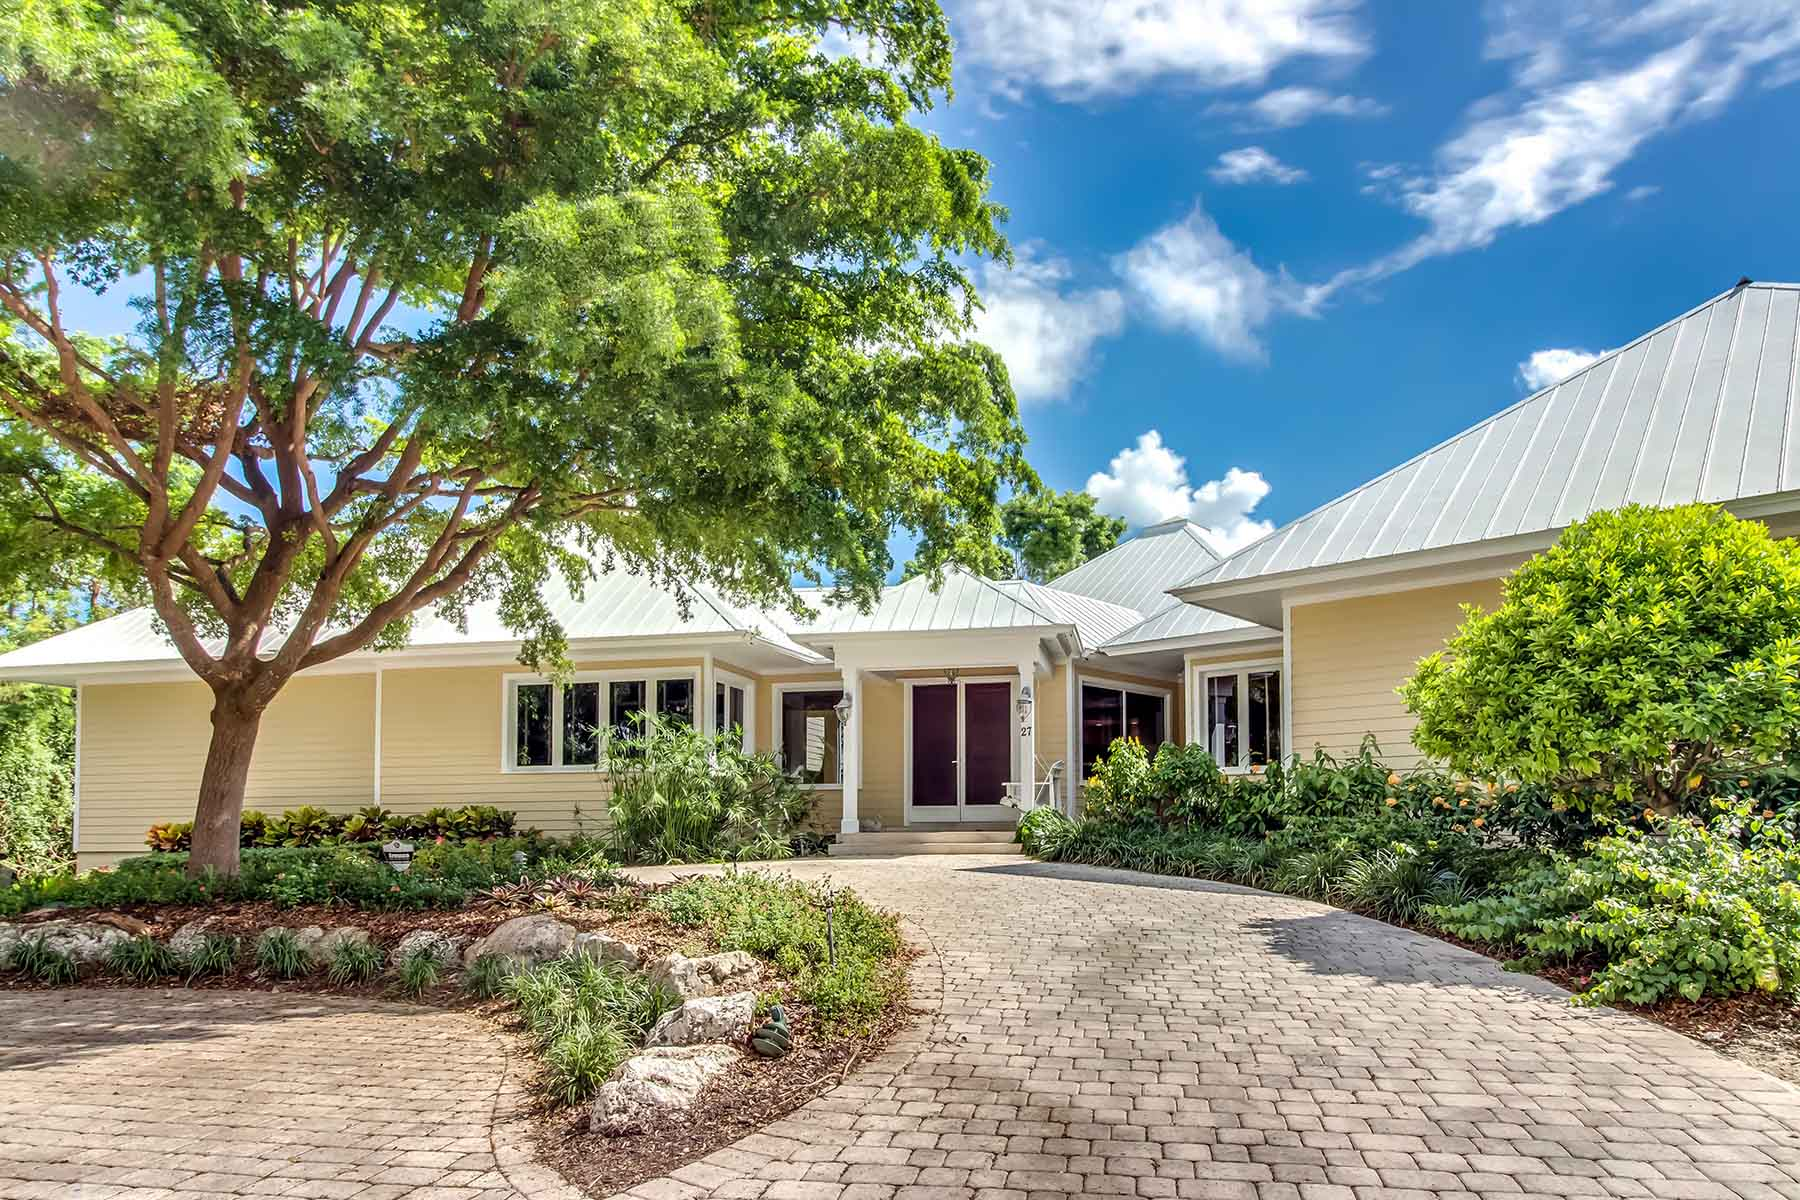 Single Family Home for Sale at Mesmerizing Hammock Course Home at Ocean Reef Club 27 Dilly Tree Park Key Largo, Florida 33037 United States